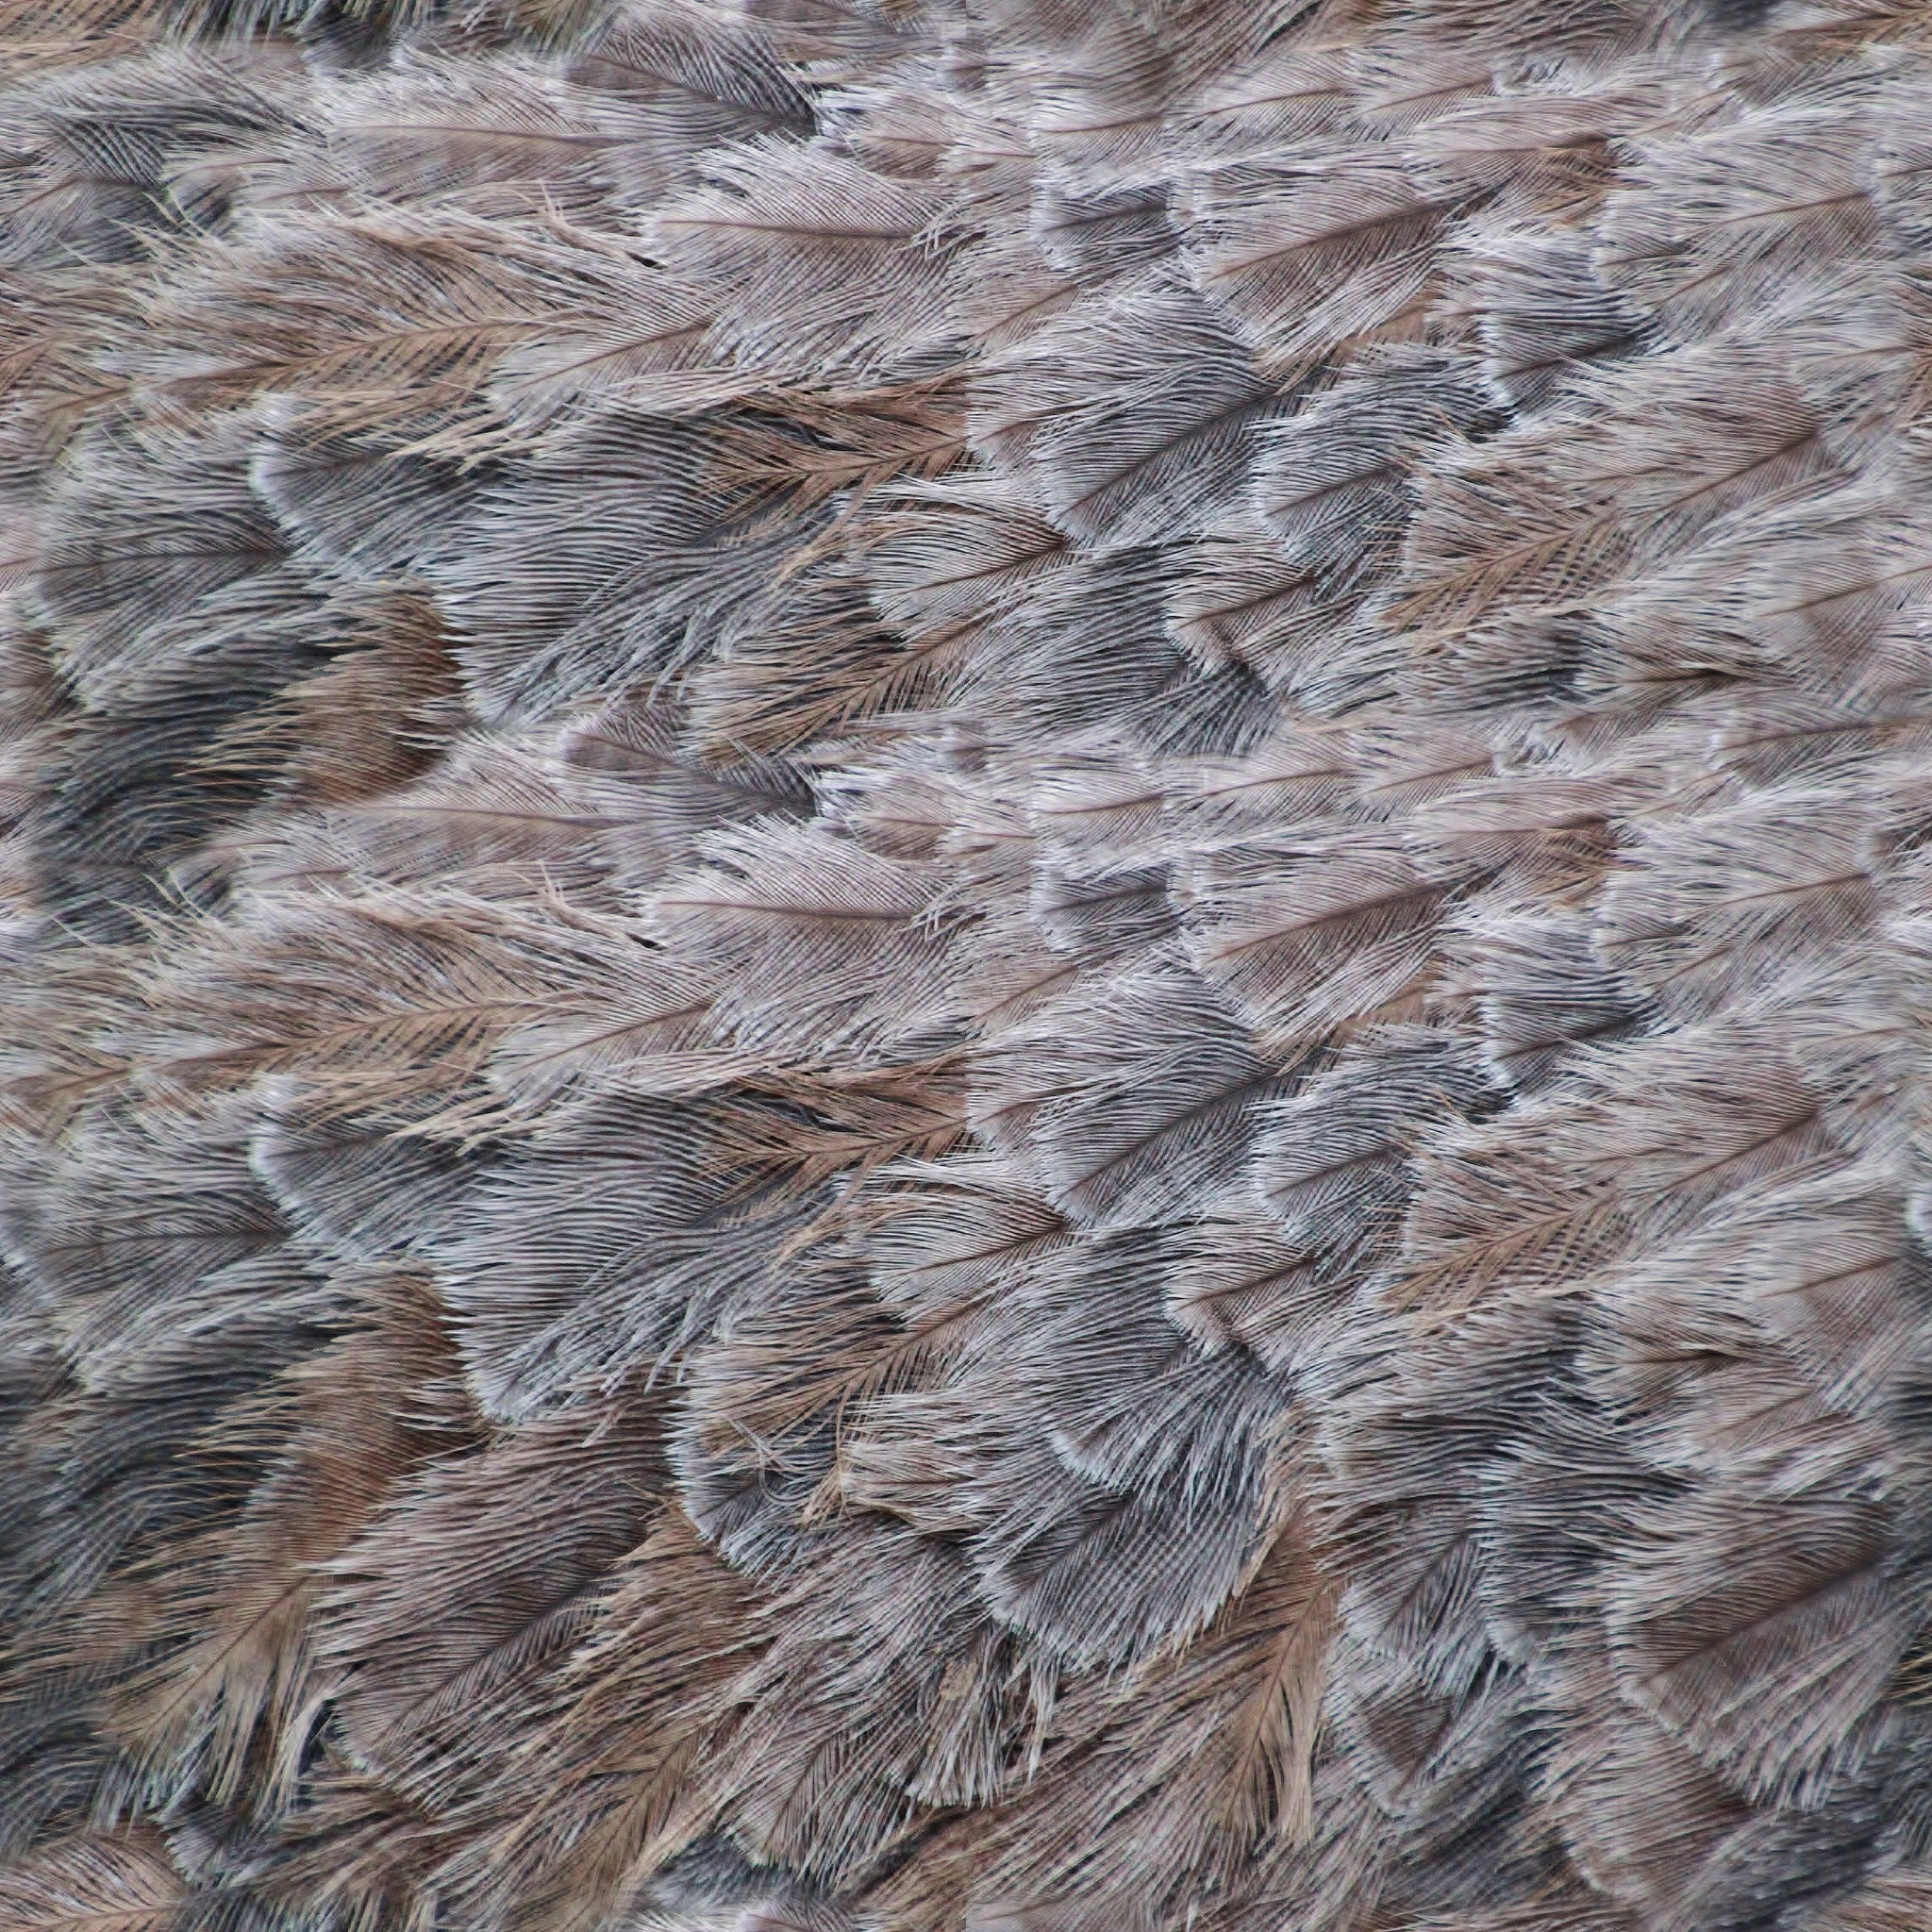 Bird Feathers Download Royalty Free Texture